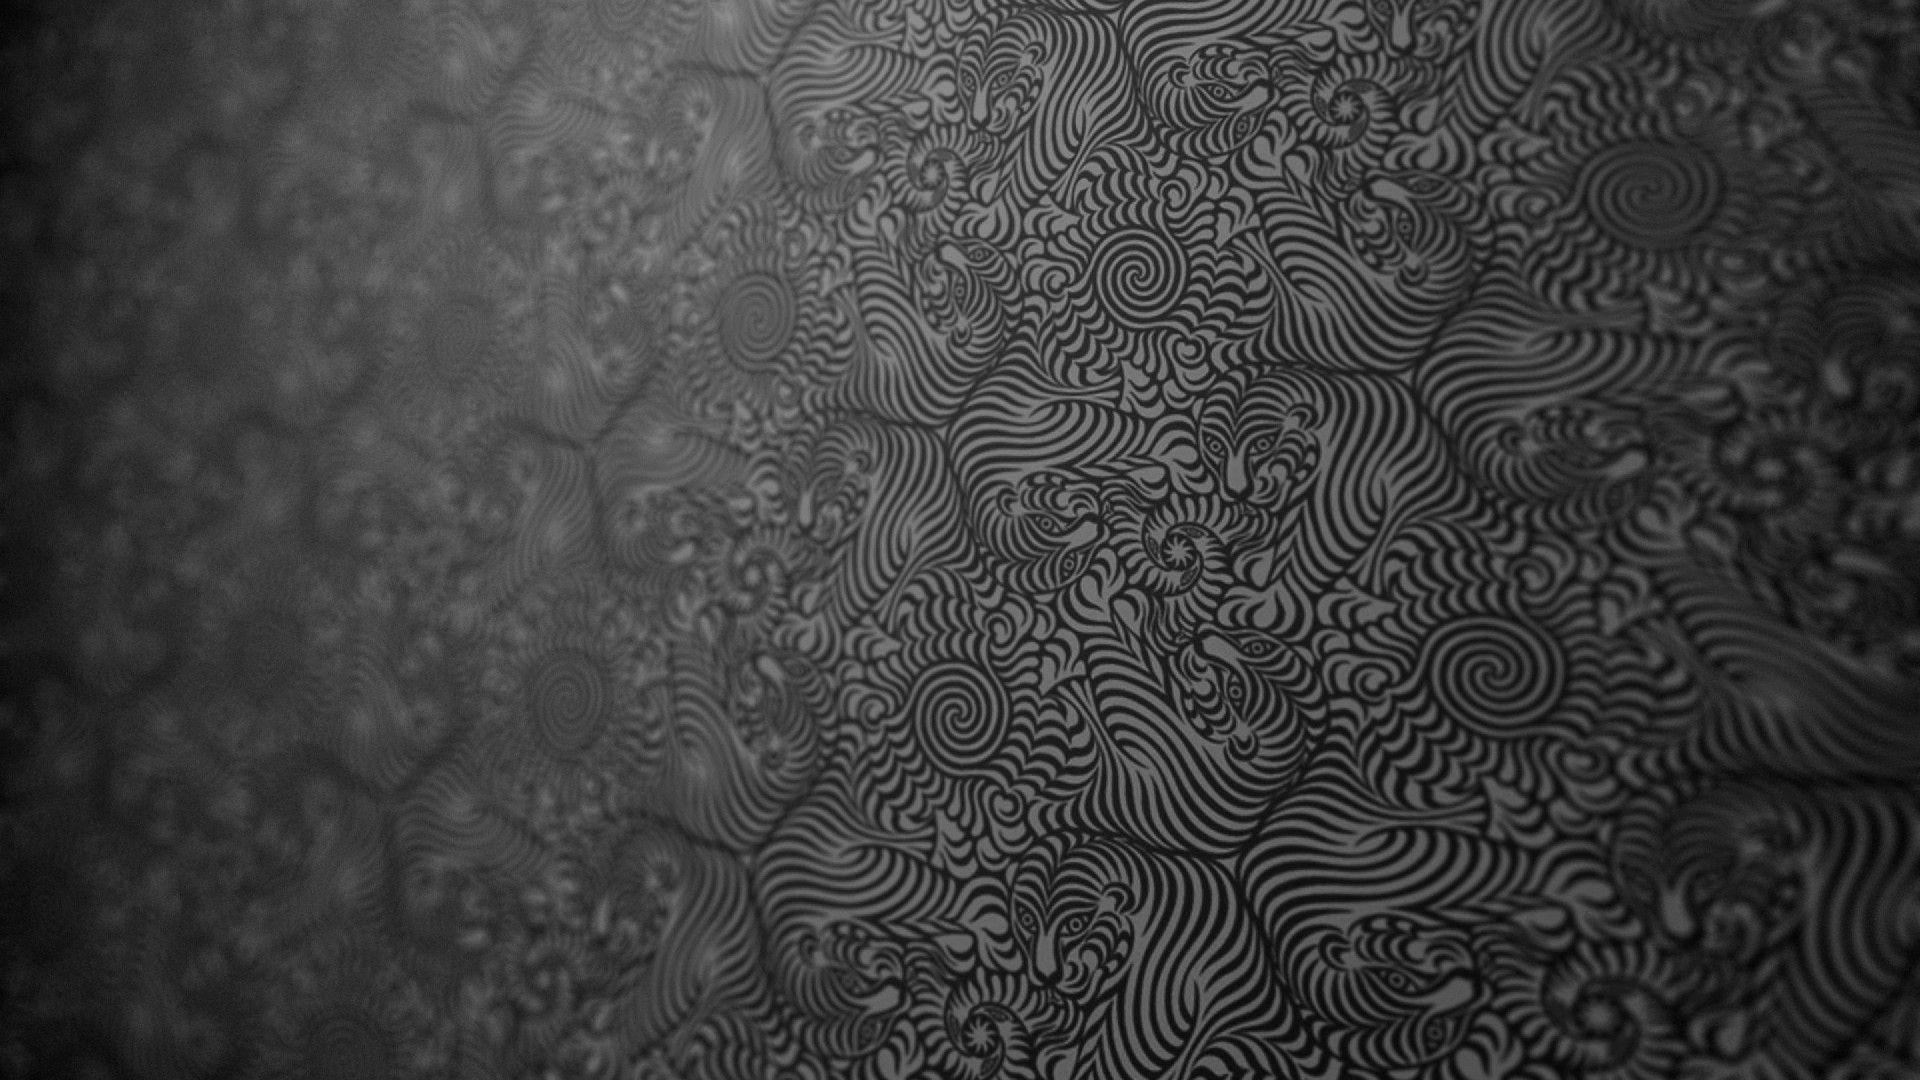 wallpapers and patterns on - photo #26